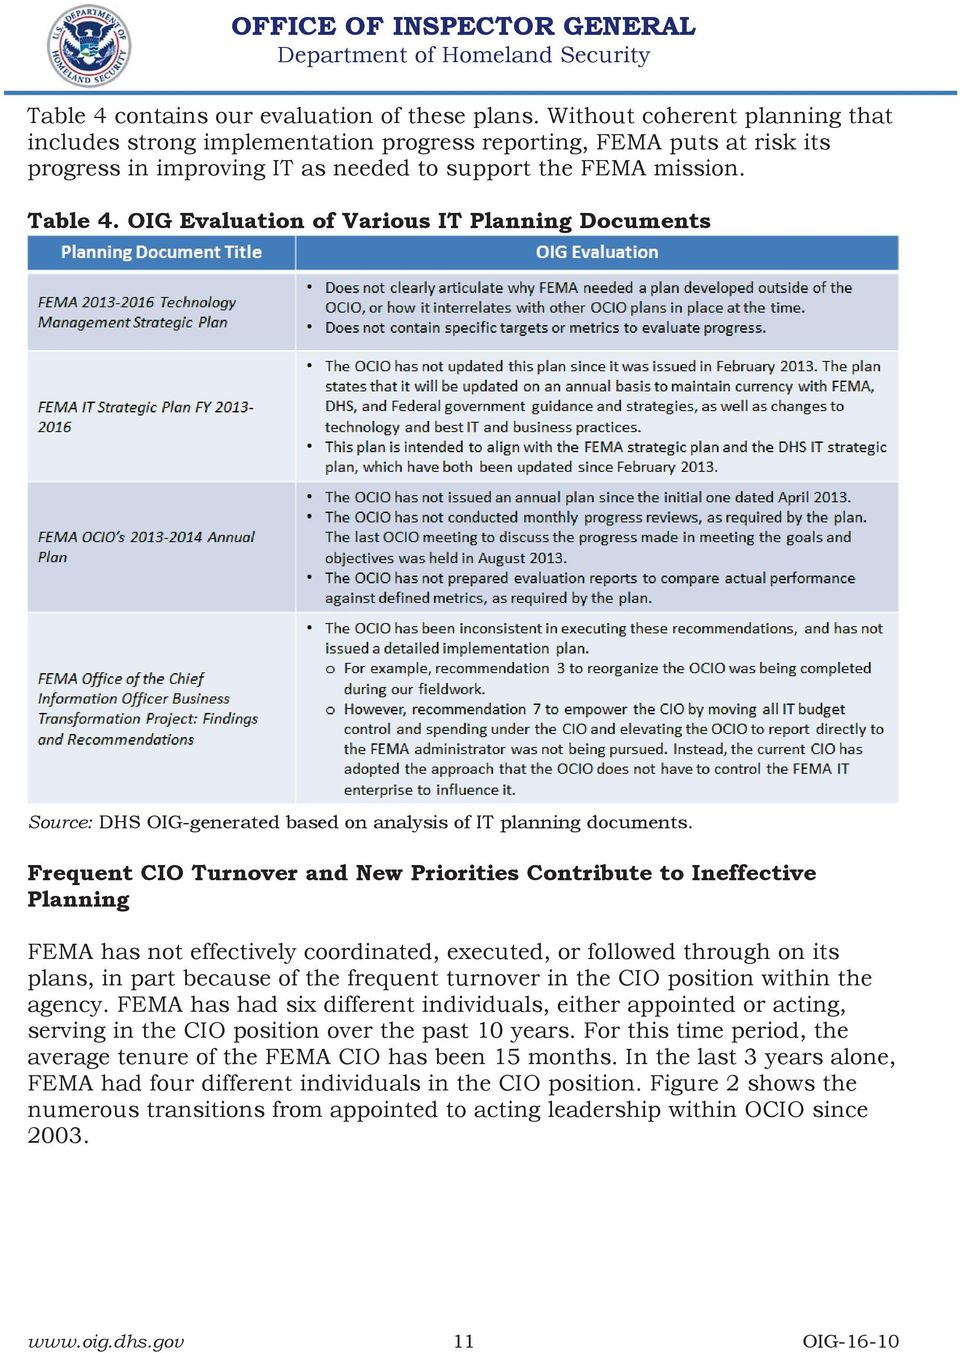 OIG Evaluation of Various IT Planning Documents Source: DHS OIG-generated based on analysis of IT planning documents.